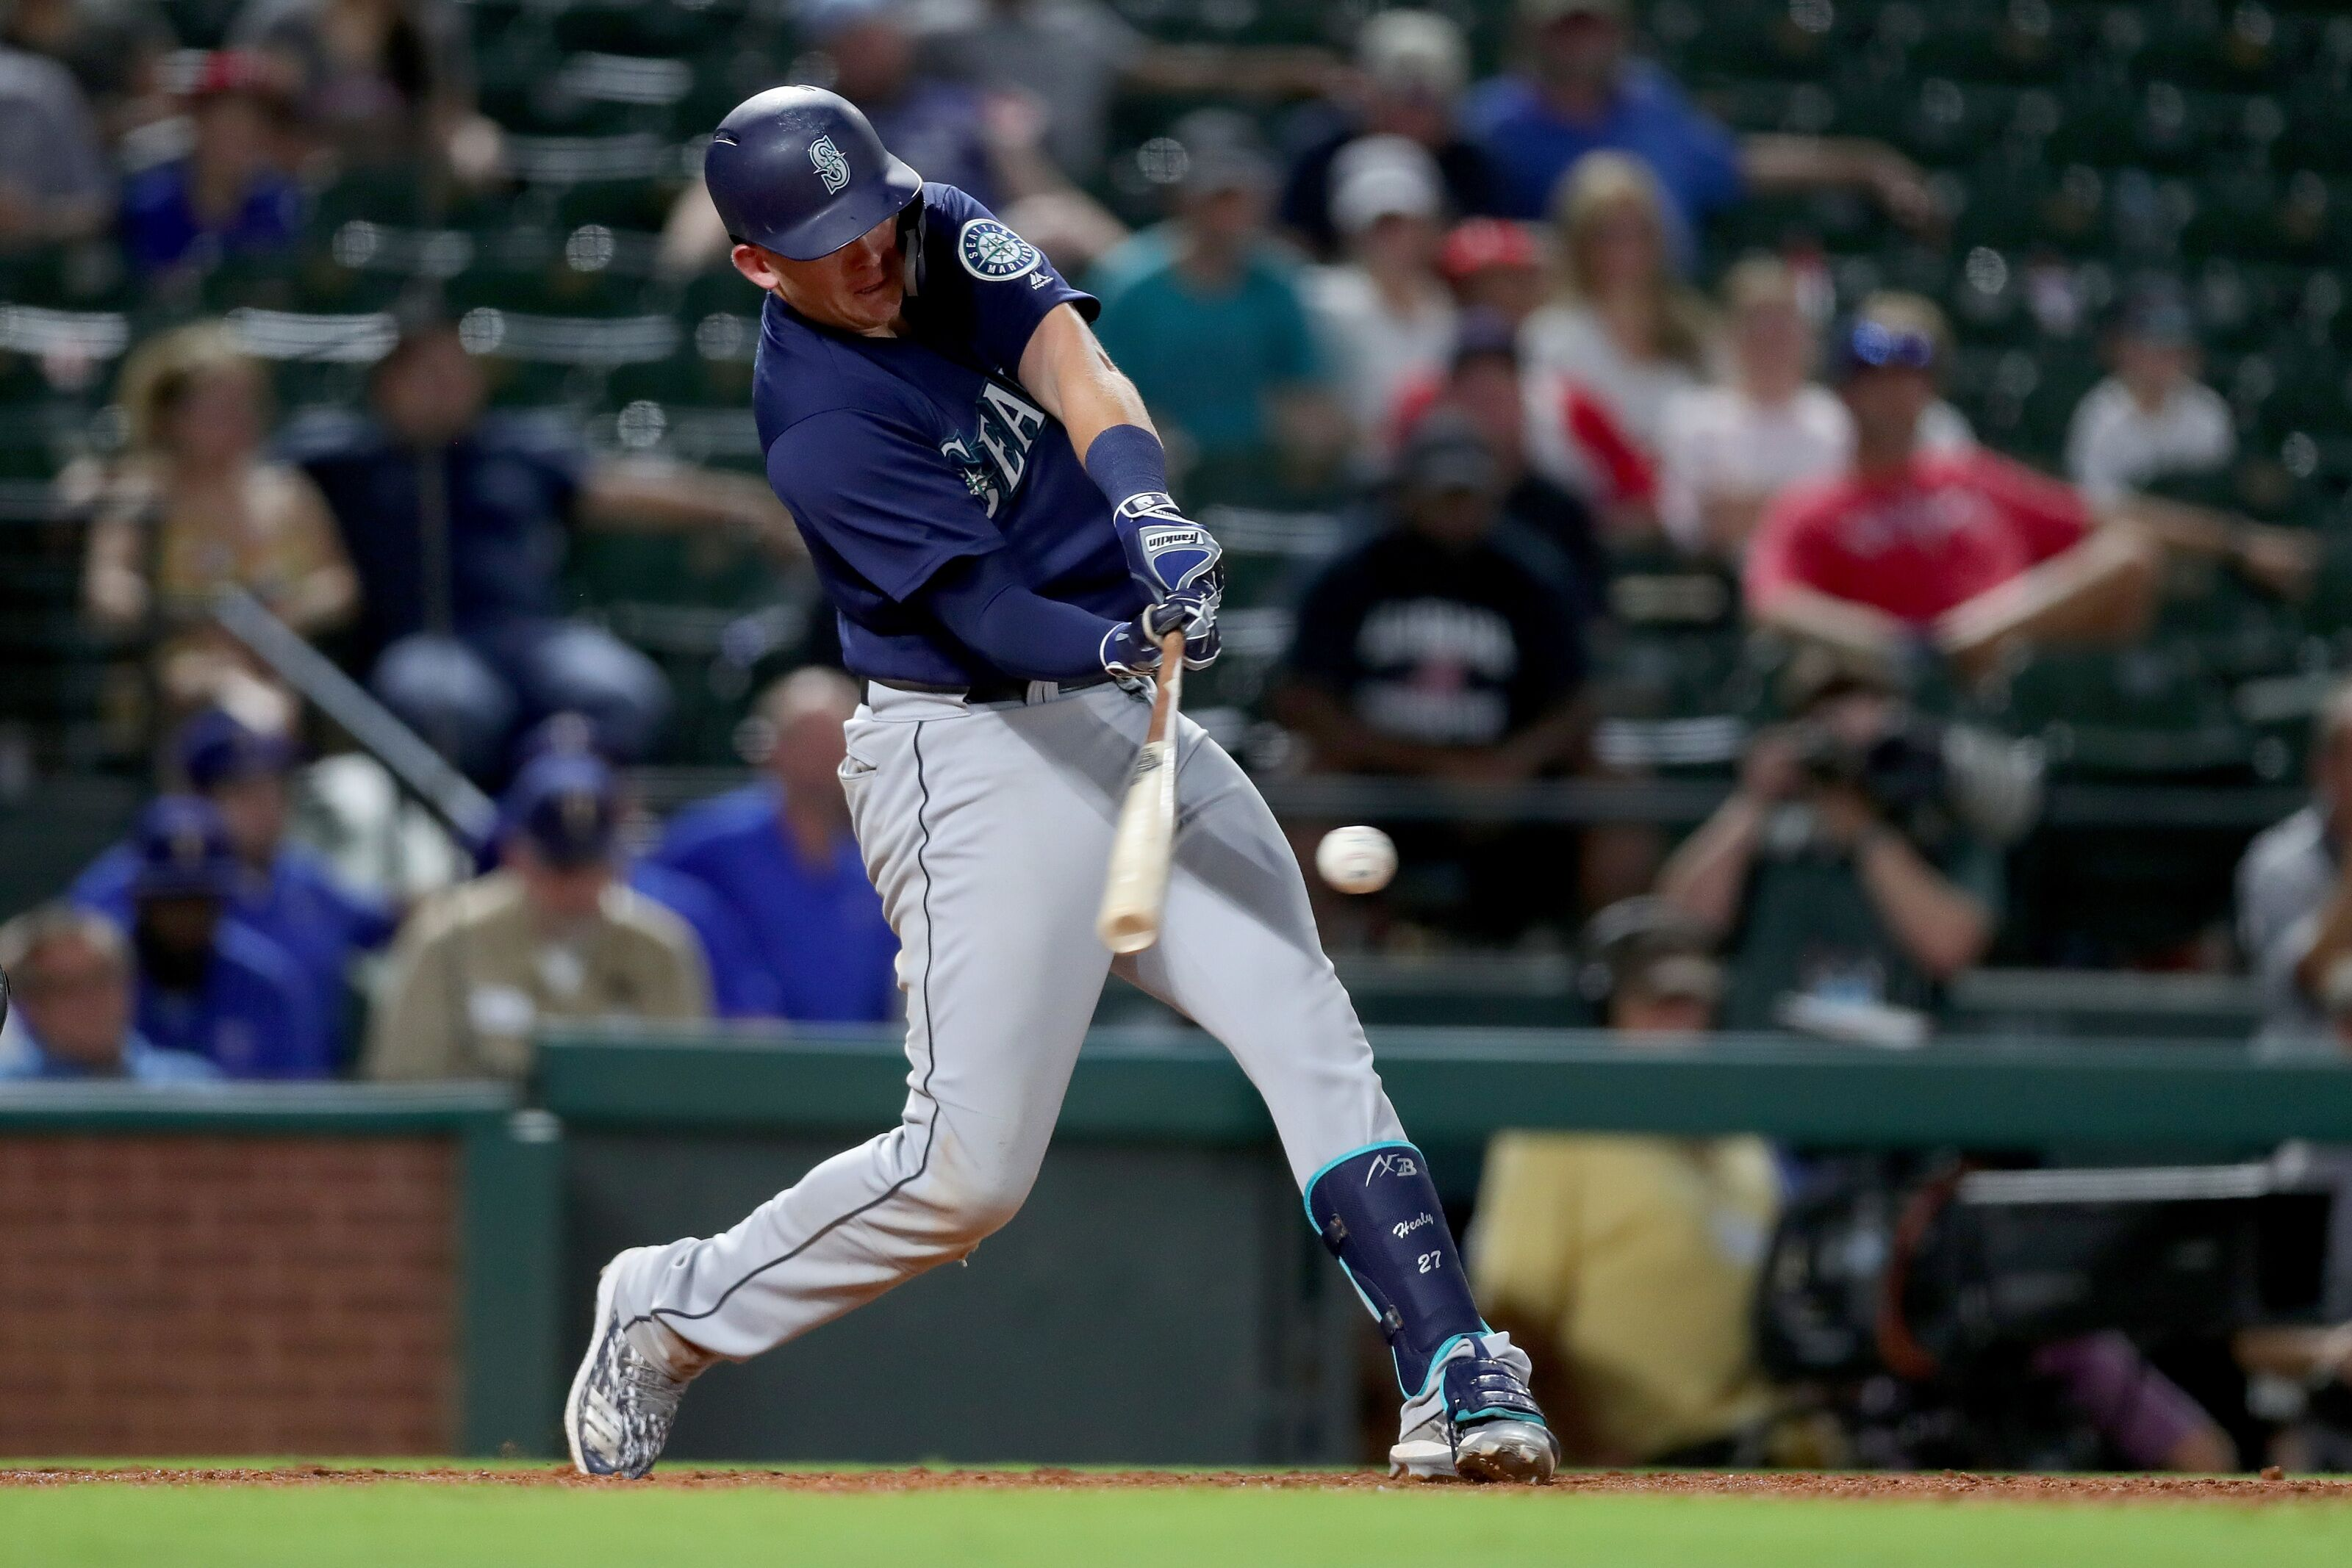 Seattle Mariners Trade a Day: Ryon Healy to Kansas City